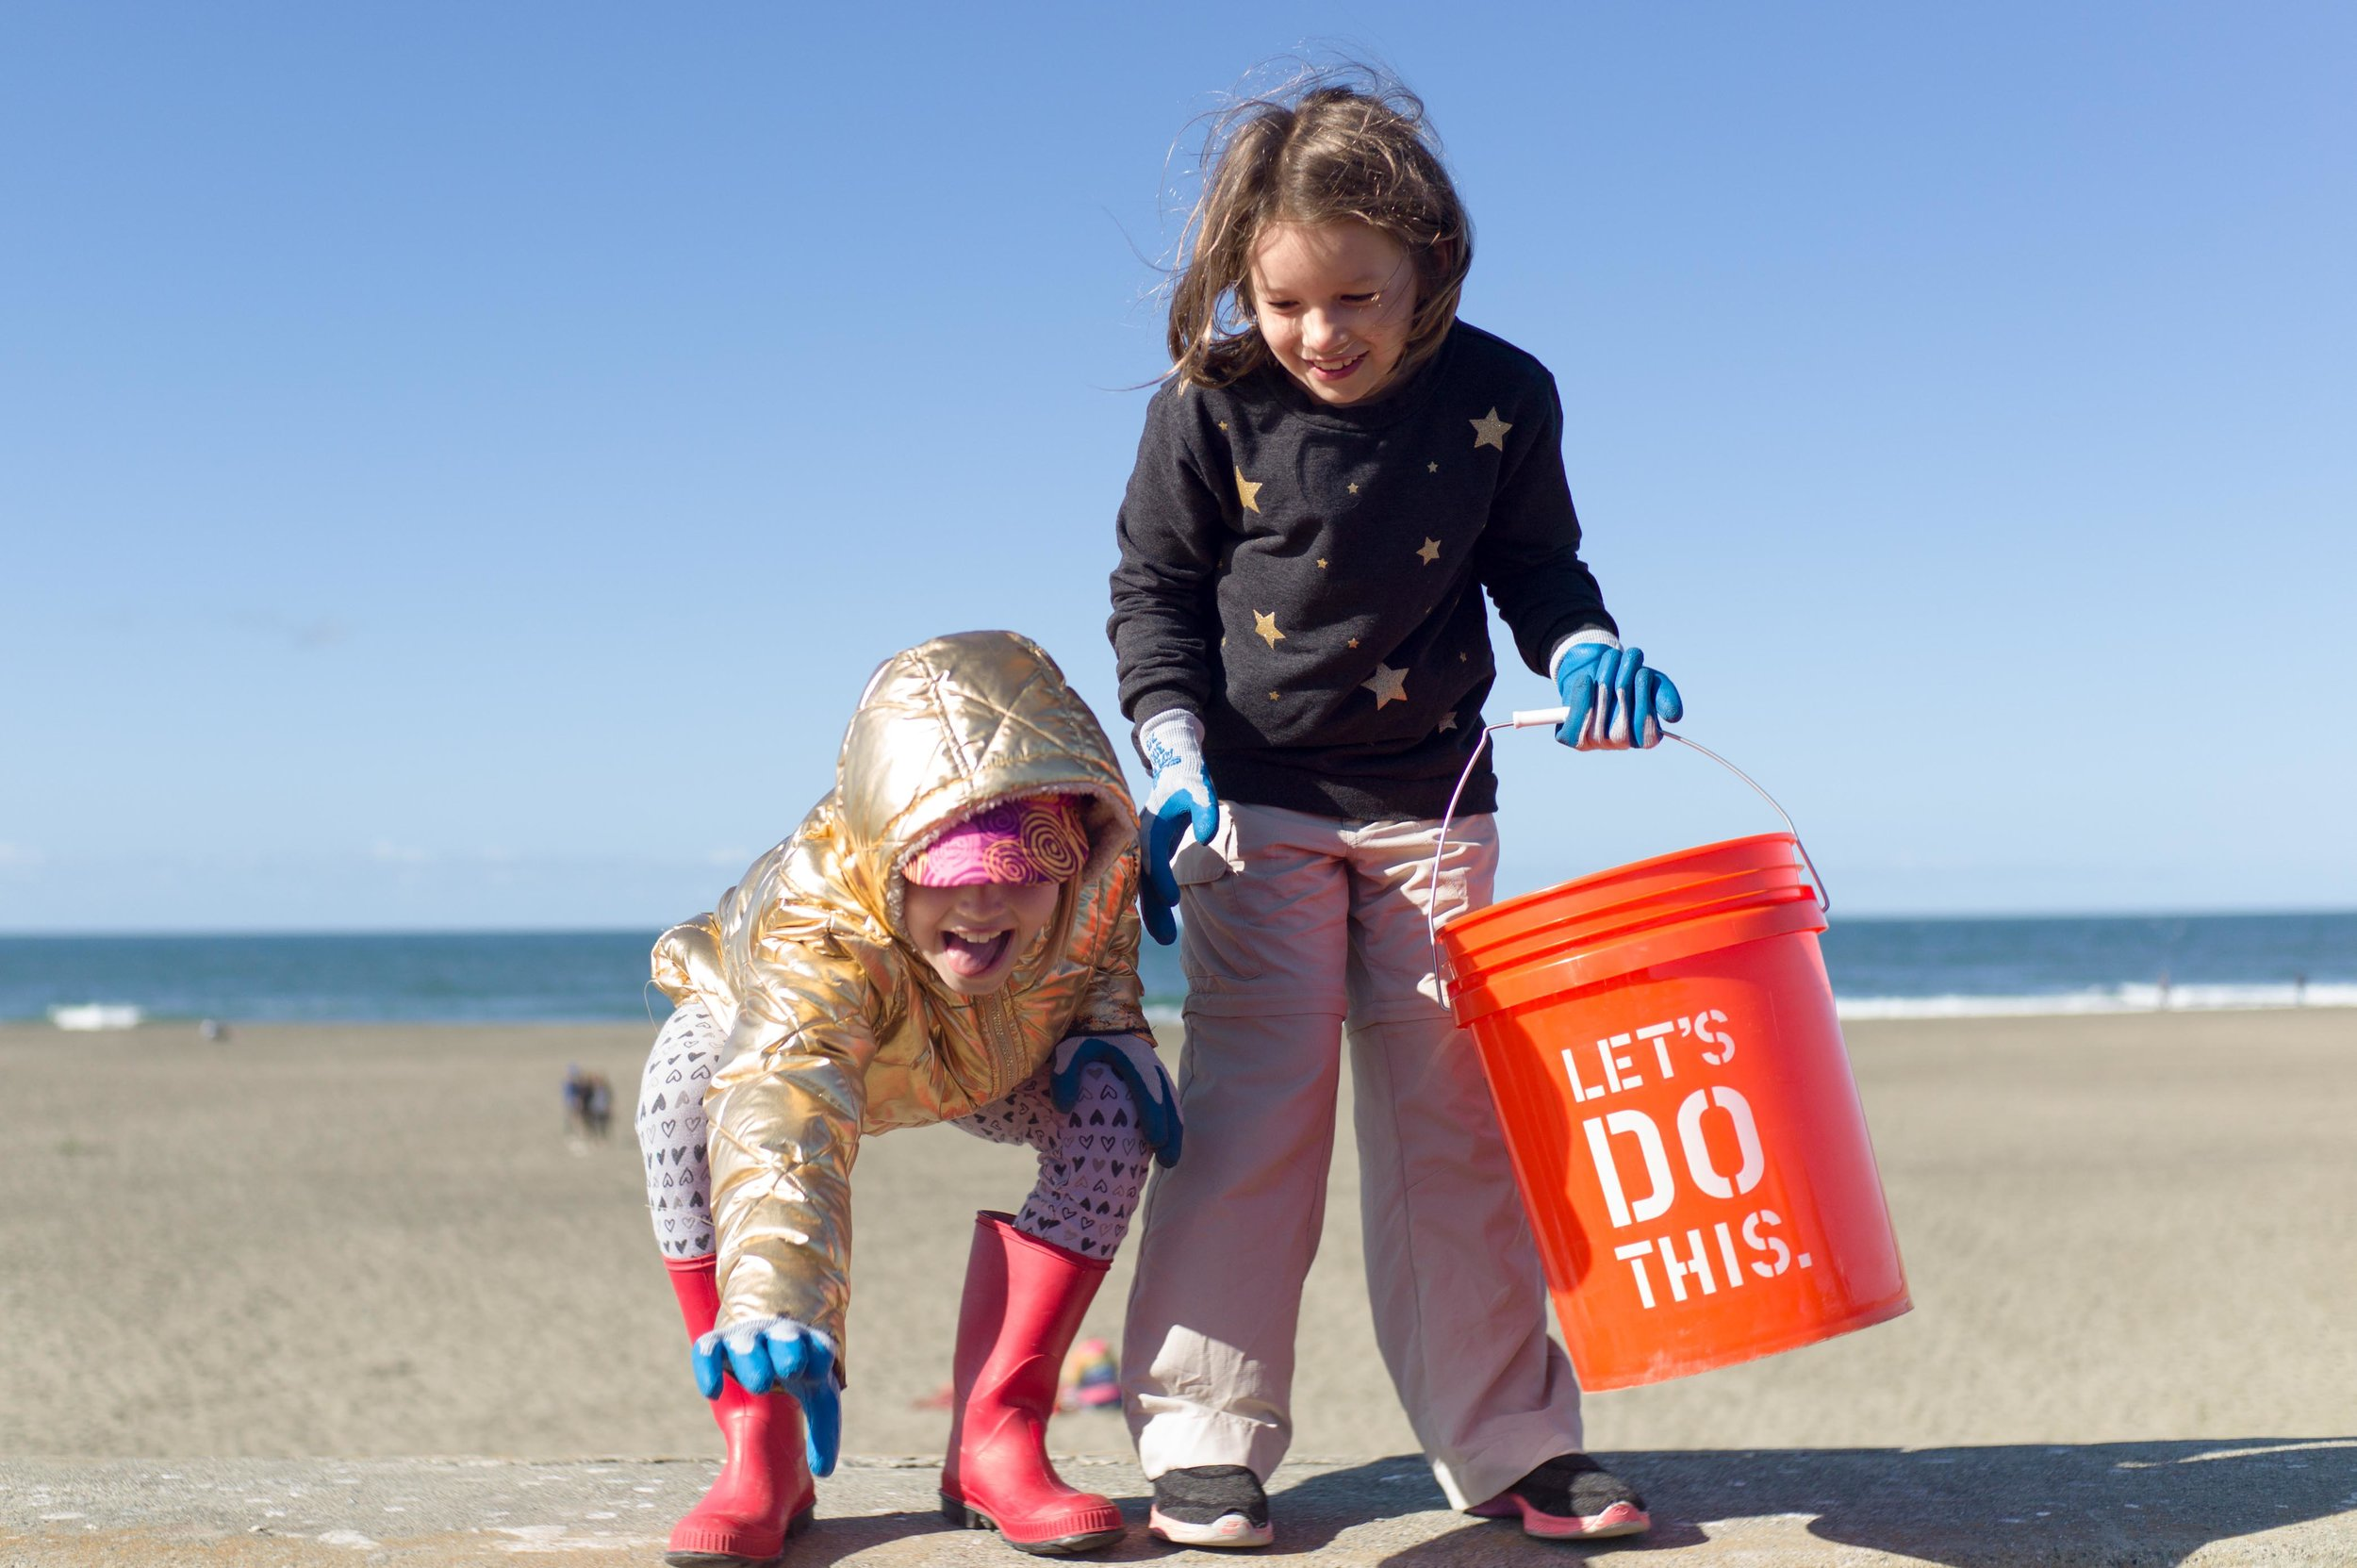 17 Surfrider - Beach Cleanup-20171105-5.jpg